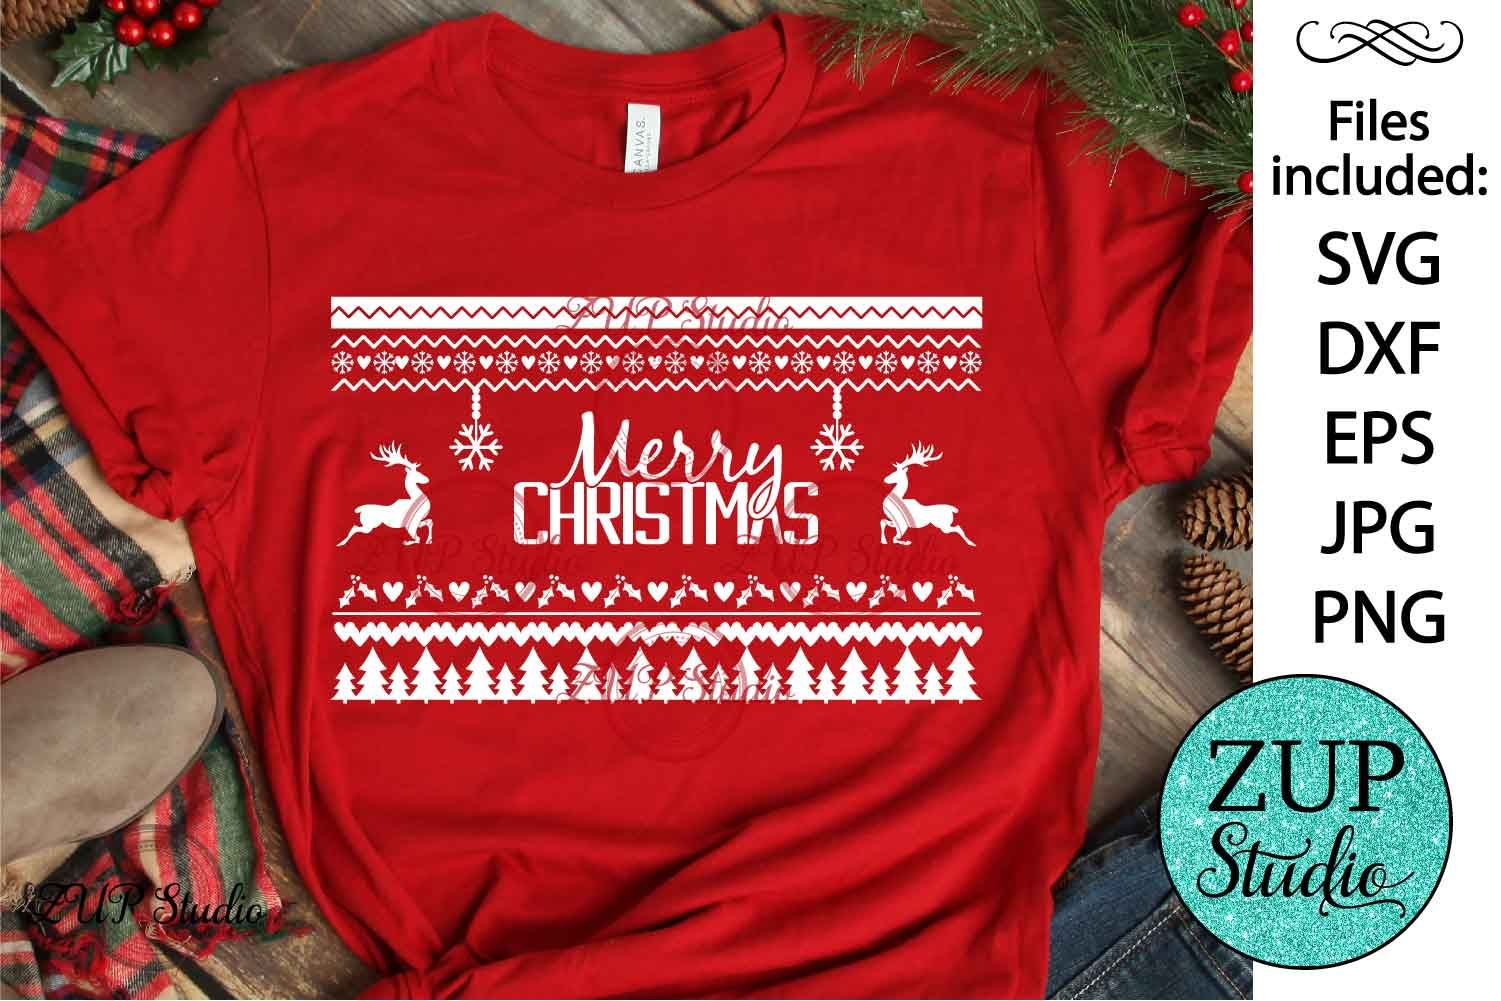 Pin by ZuPrintStudio on Christmas Christmas sweaters